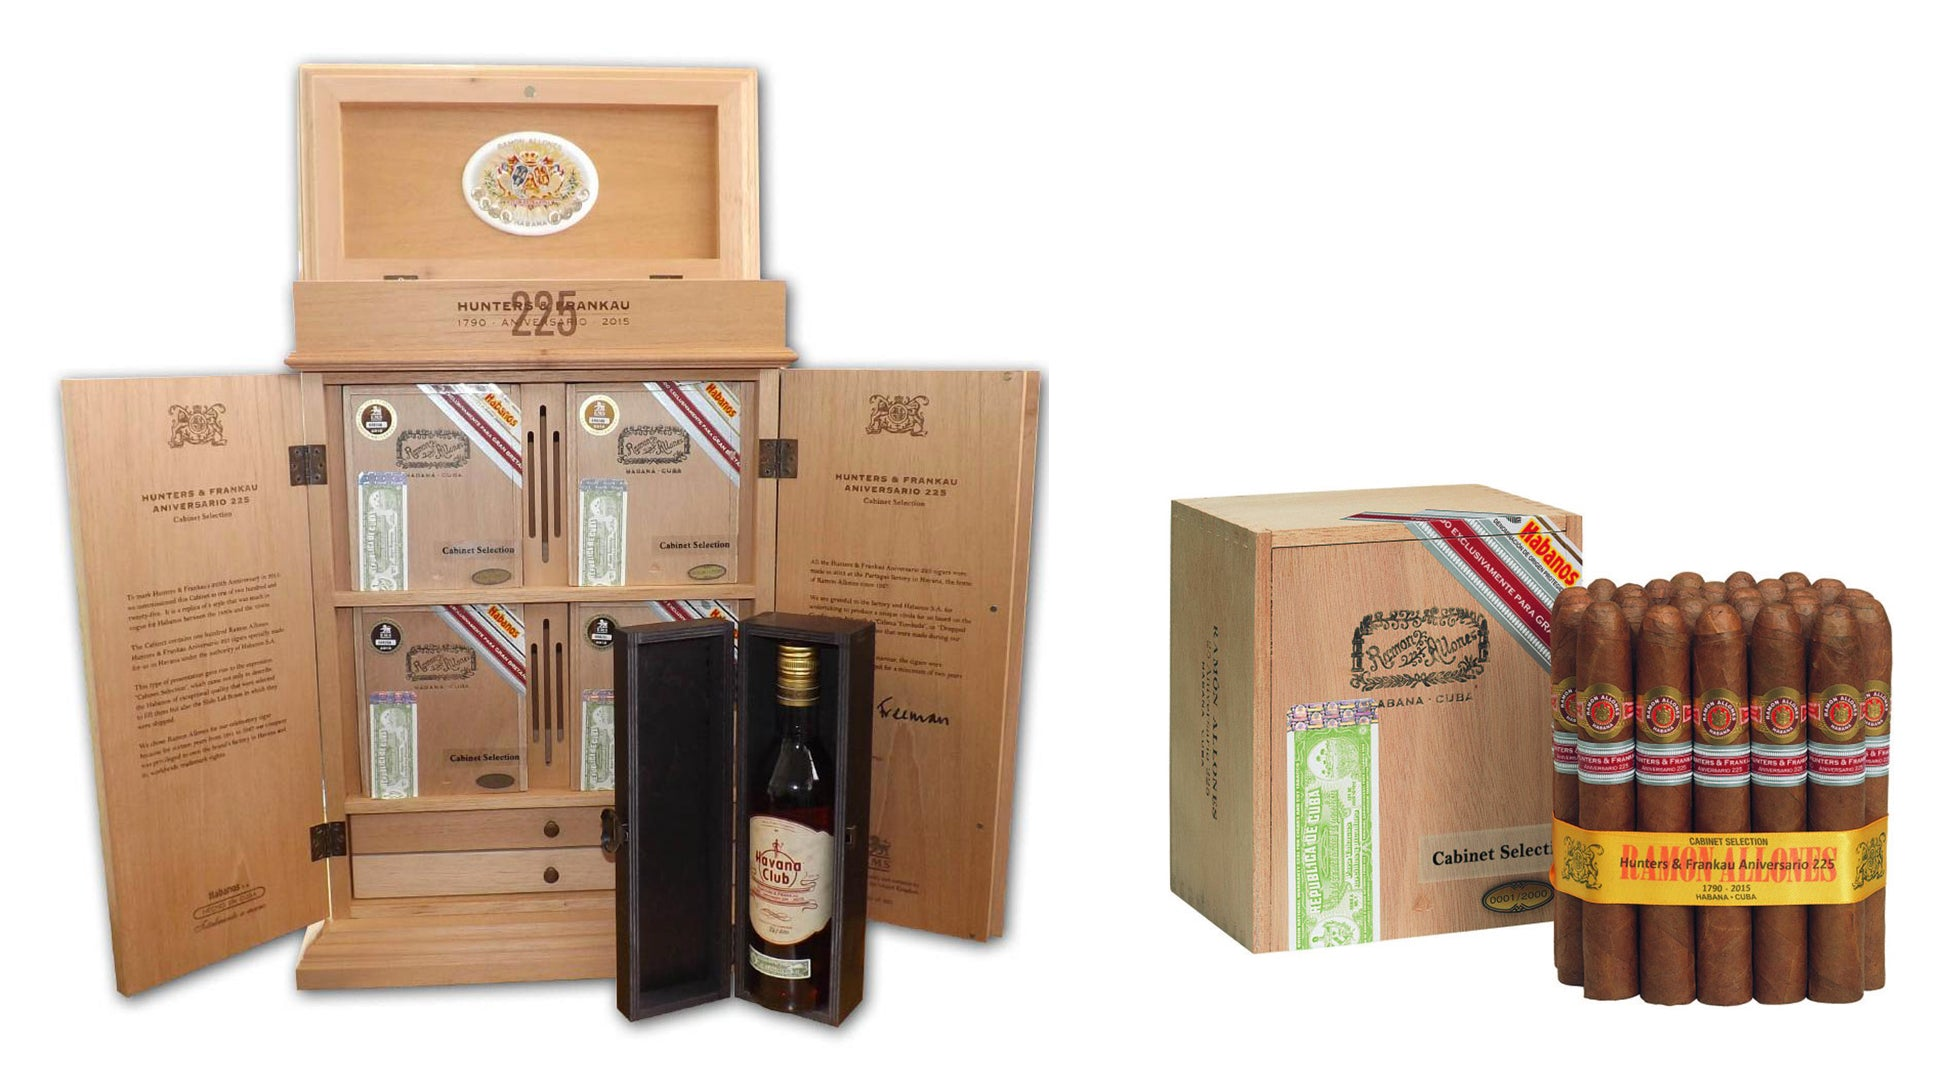 RAMON ALLONES HUNTERS & FRANKAU 225TH ANIVERSARIO HUMIDOR cigars for sale online egm cigars